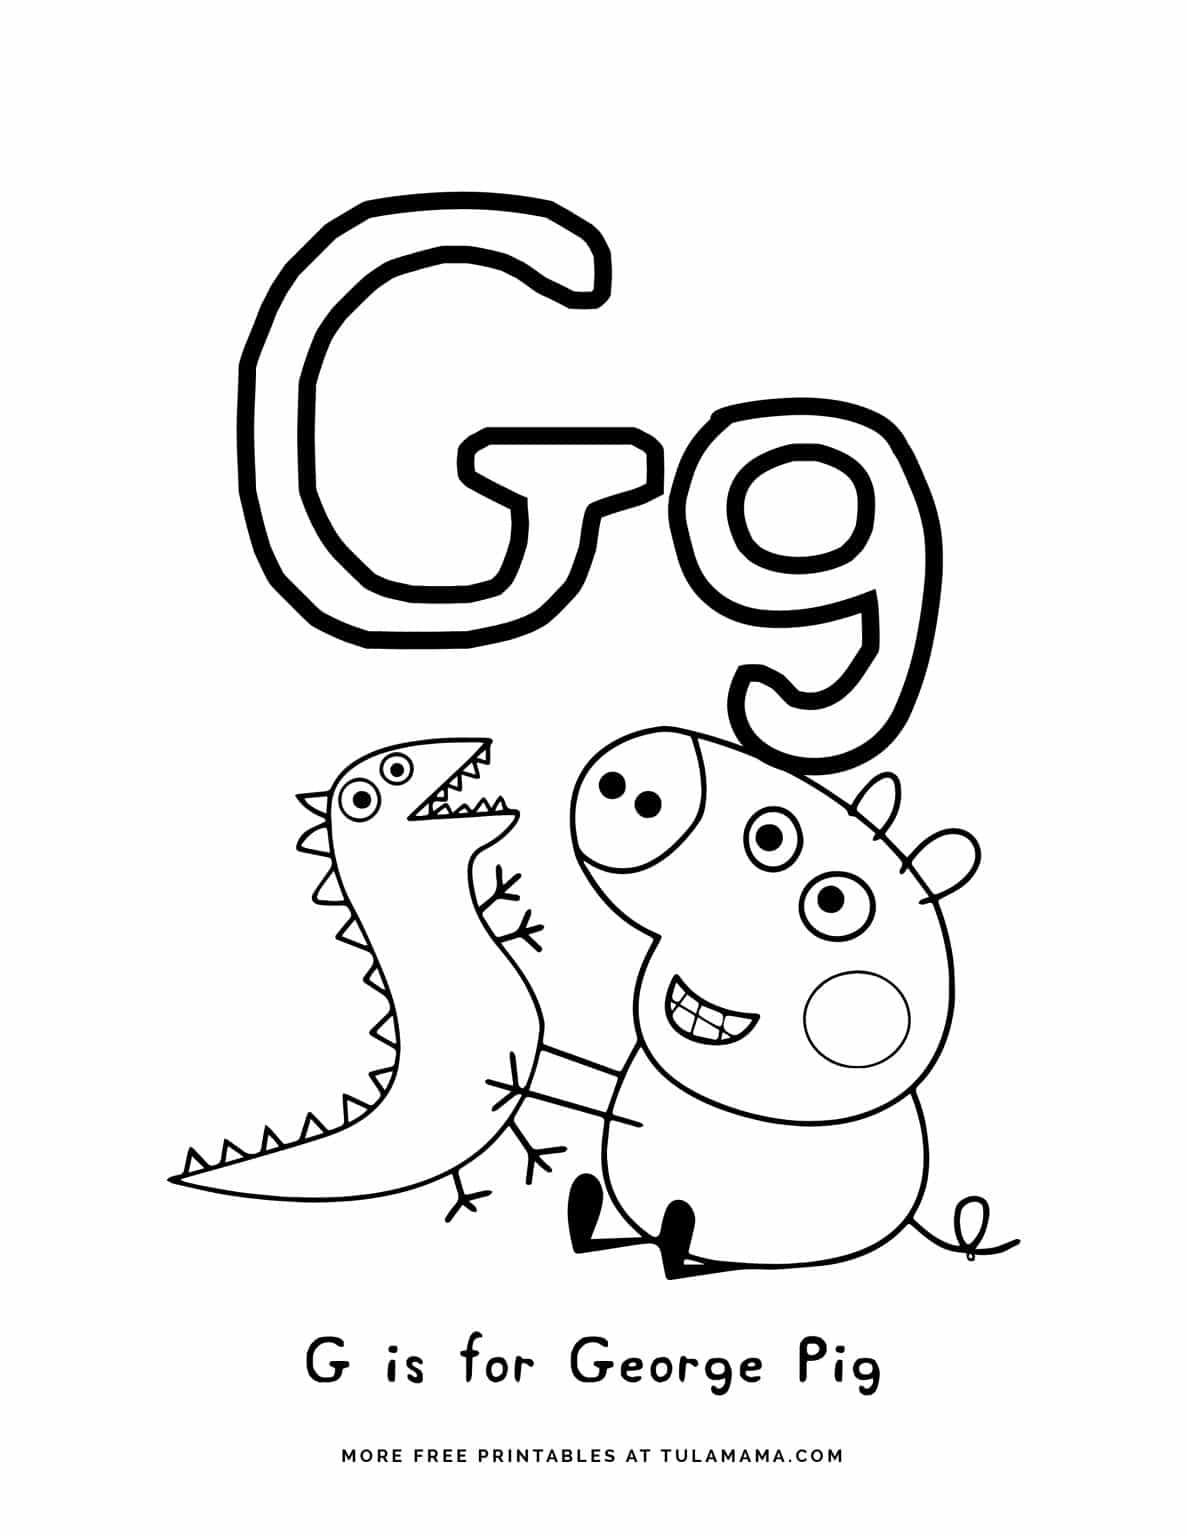 Free Printable Peppa Pig Abc Coloring Pages For Preschoolers Abc Coloring Pages Peppa Pig Coloring Pages Abc Coloring [ 1536 x 1187 Pixel ]